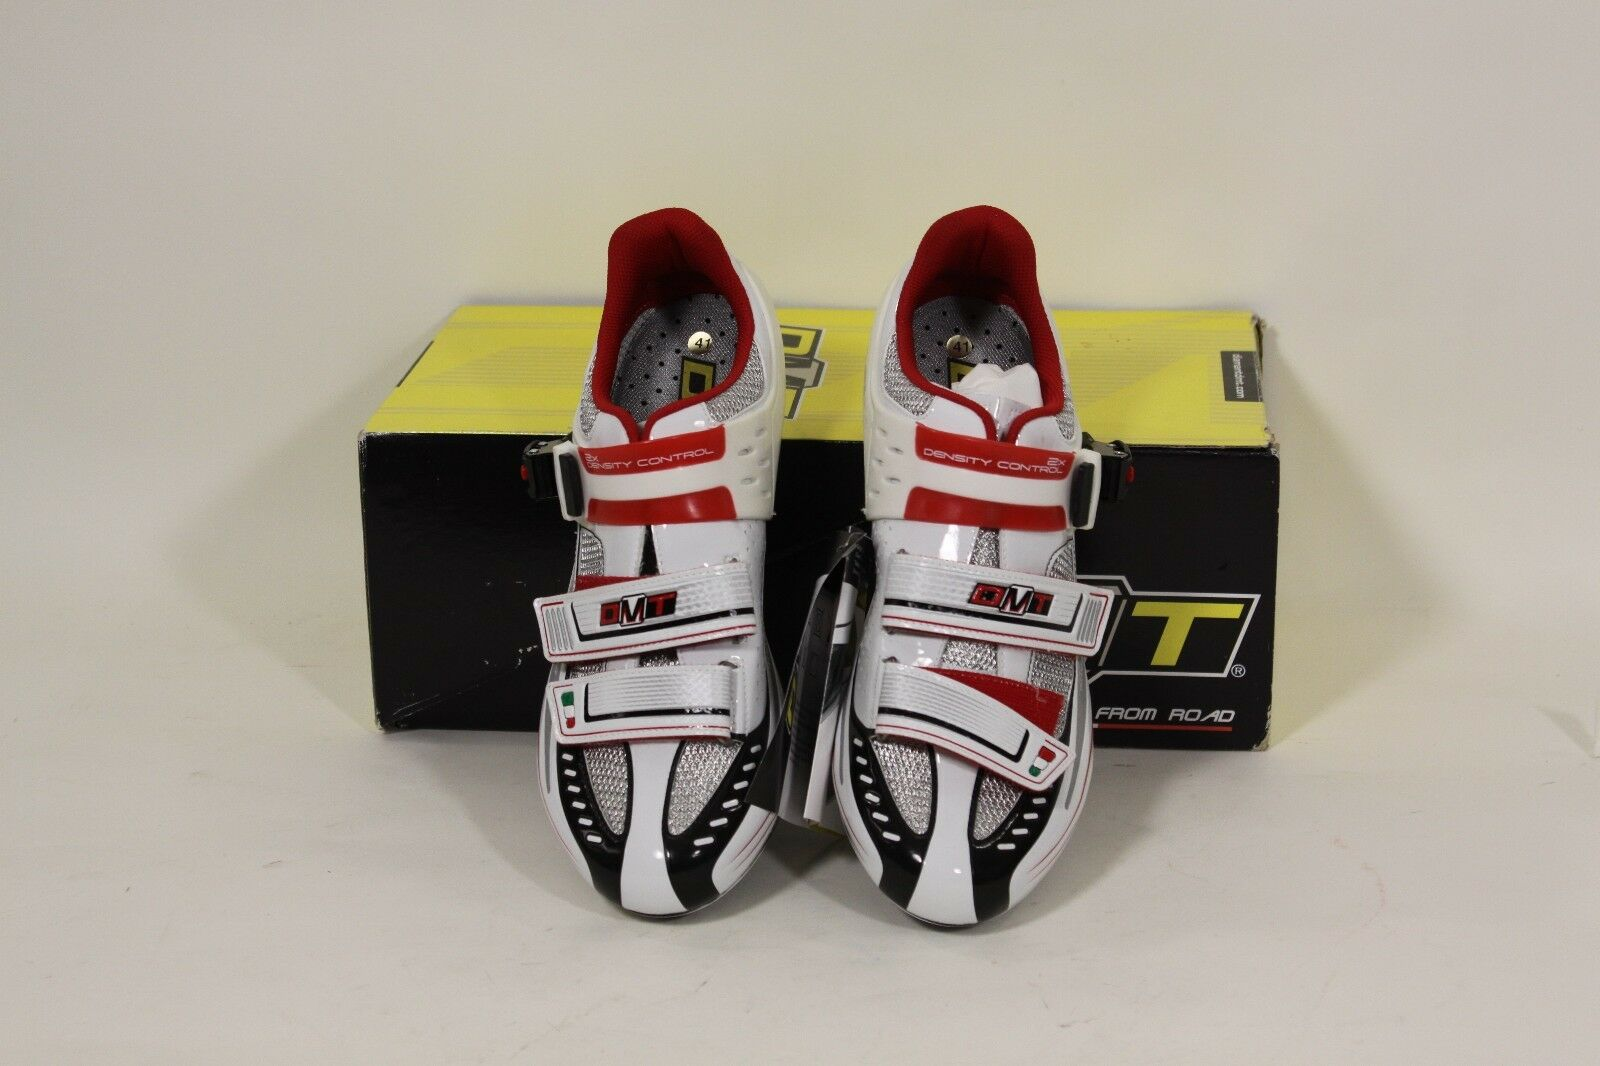 DMT Impact Men's Carbon Road Cycling shoes Wht Sil Rd Eu 41 or US 8